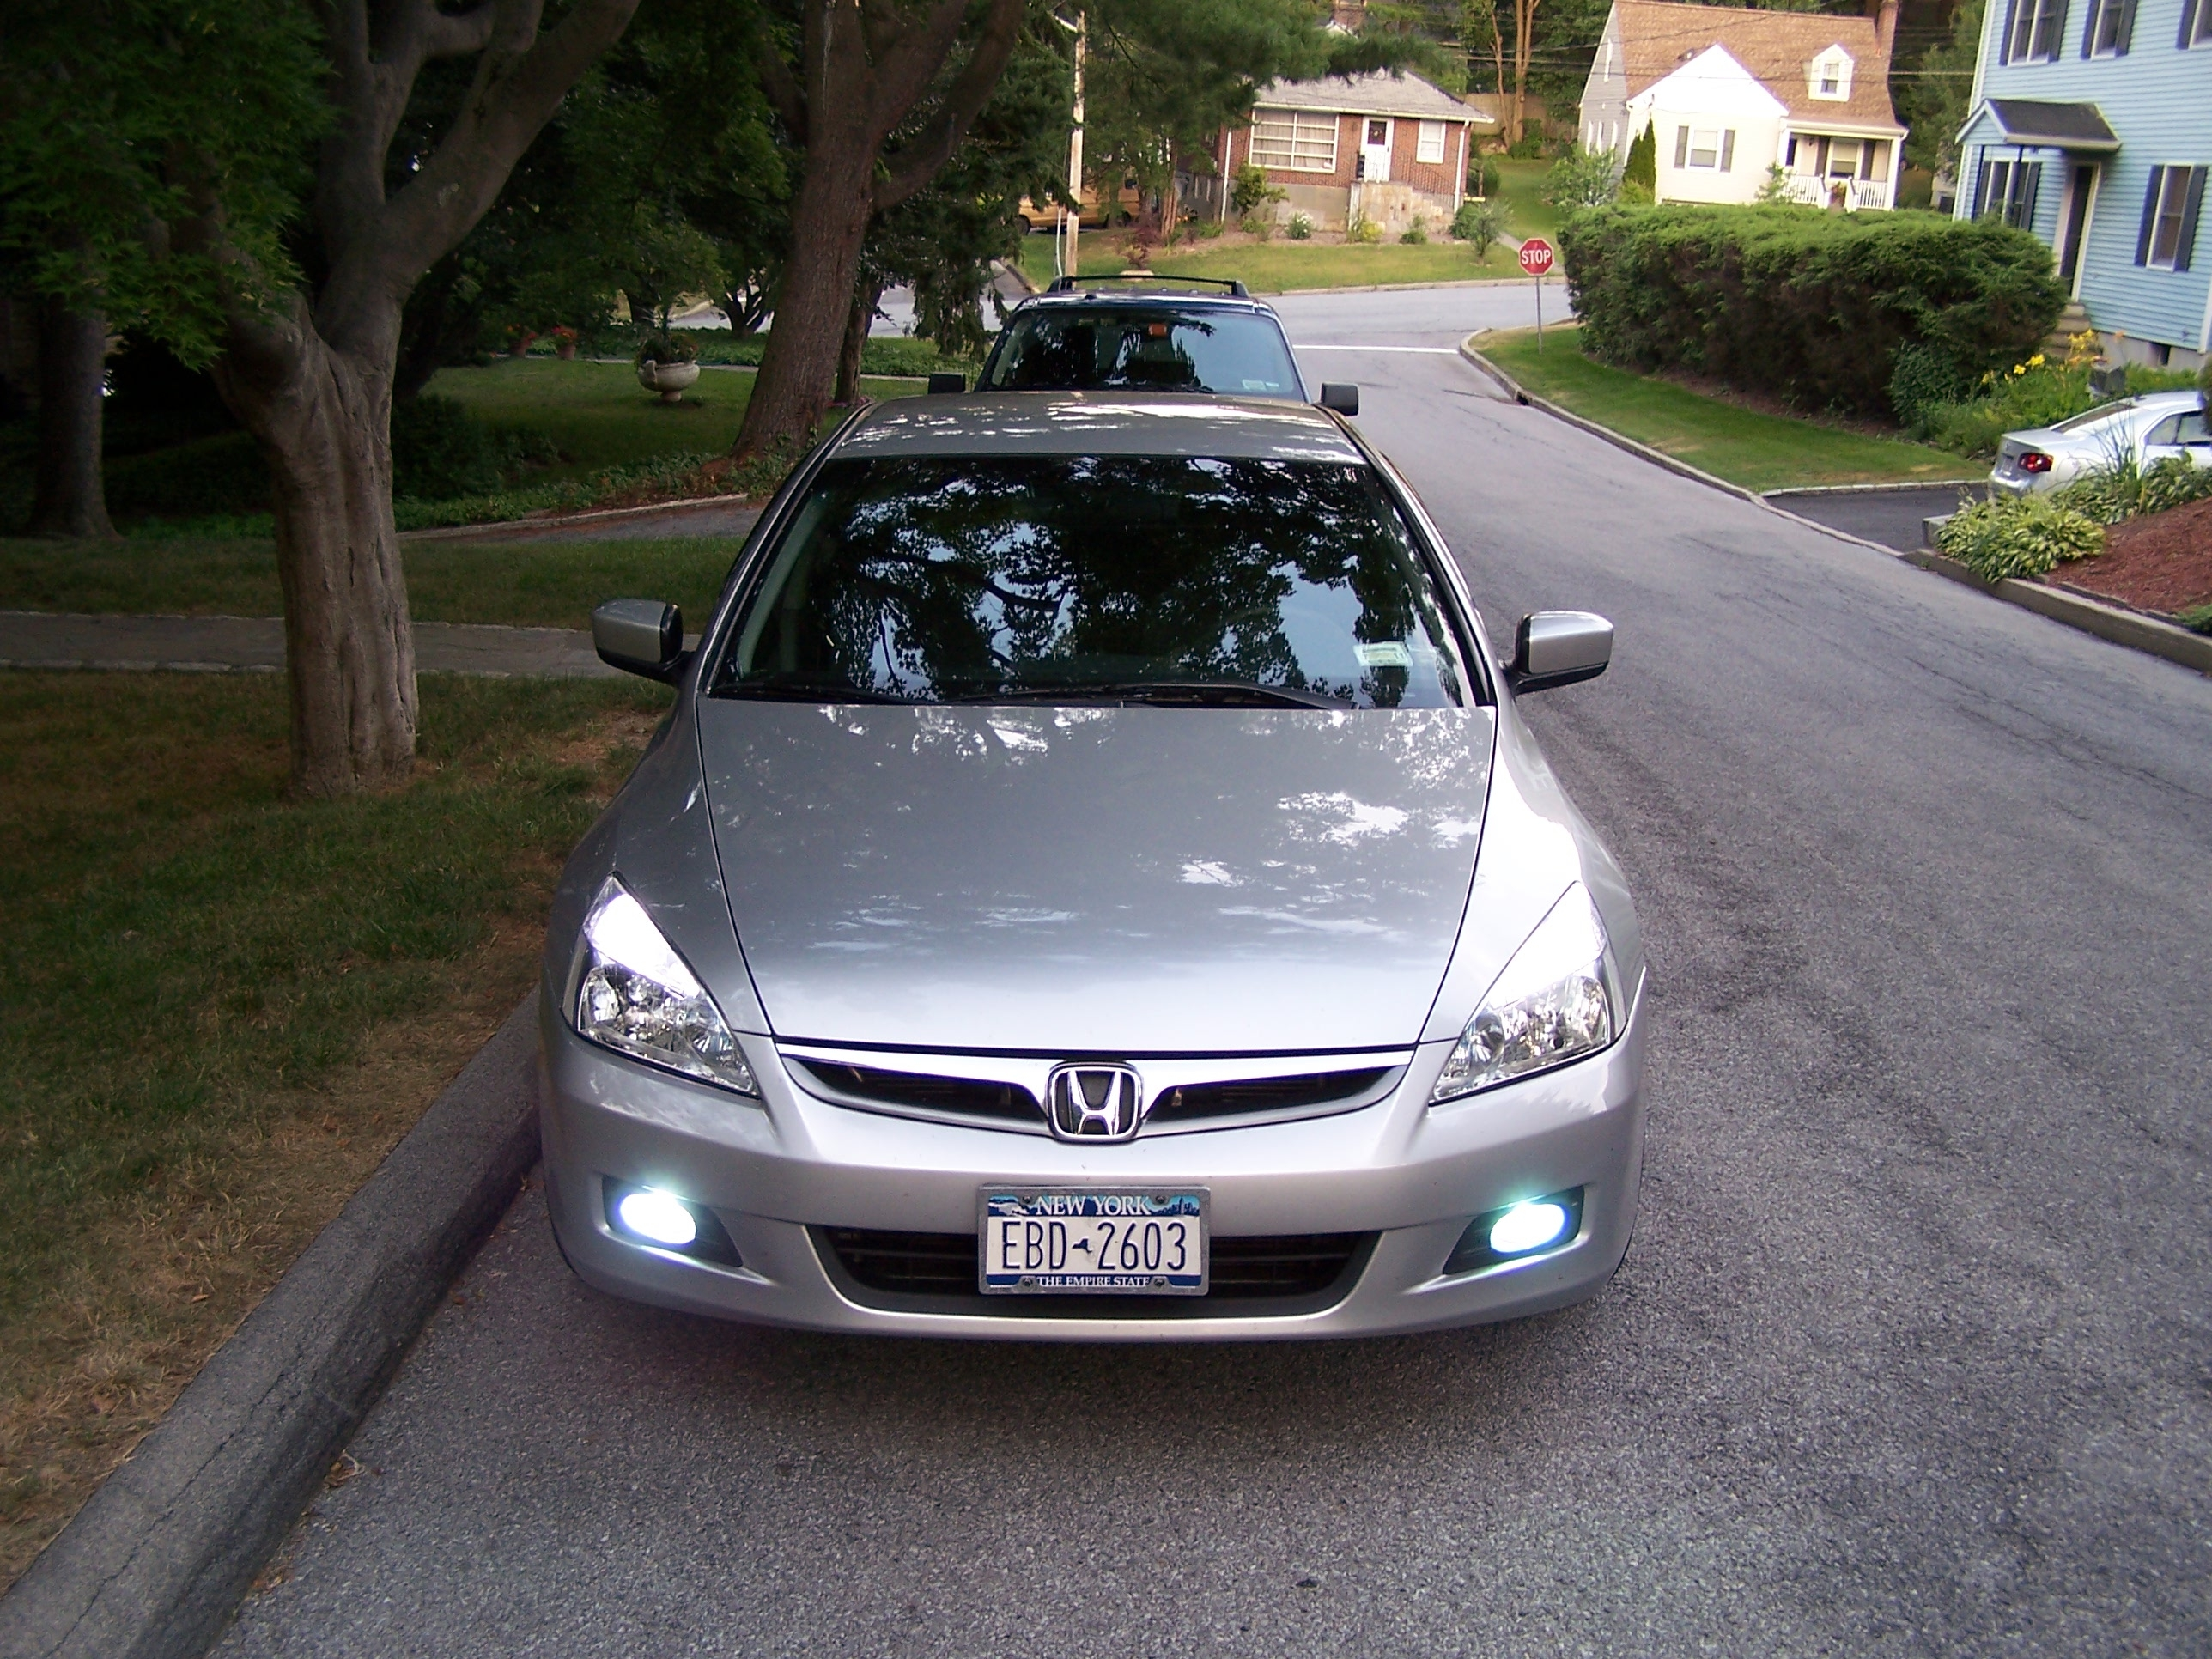 jconnway 2007 honda accord specs photos modification. Black Bedroom Furniture Sets. Home Design Ideas